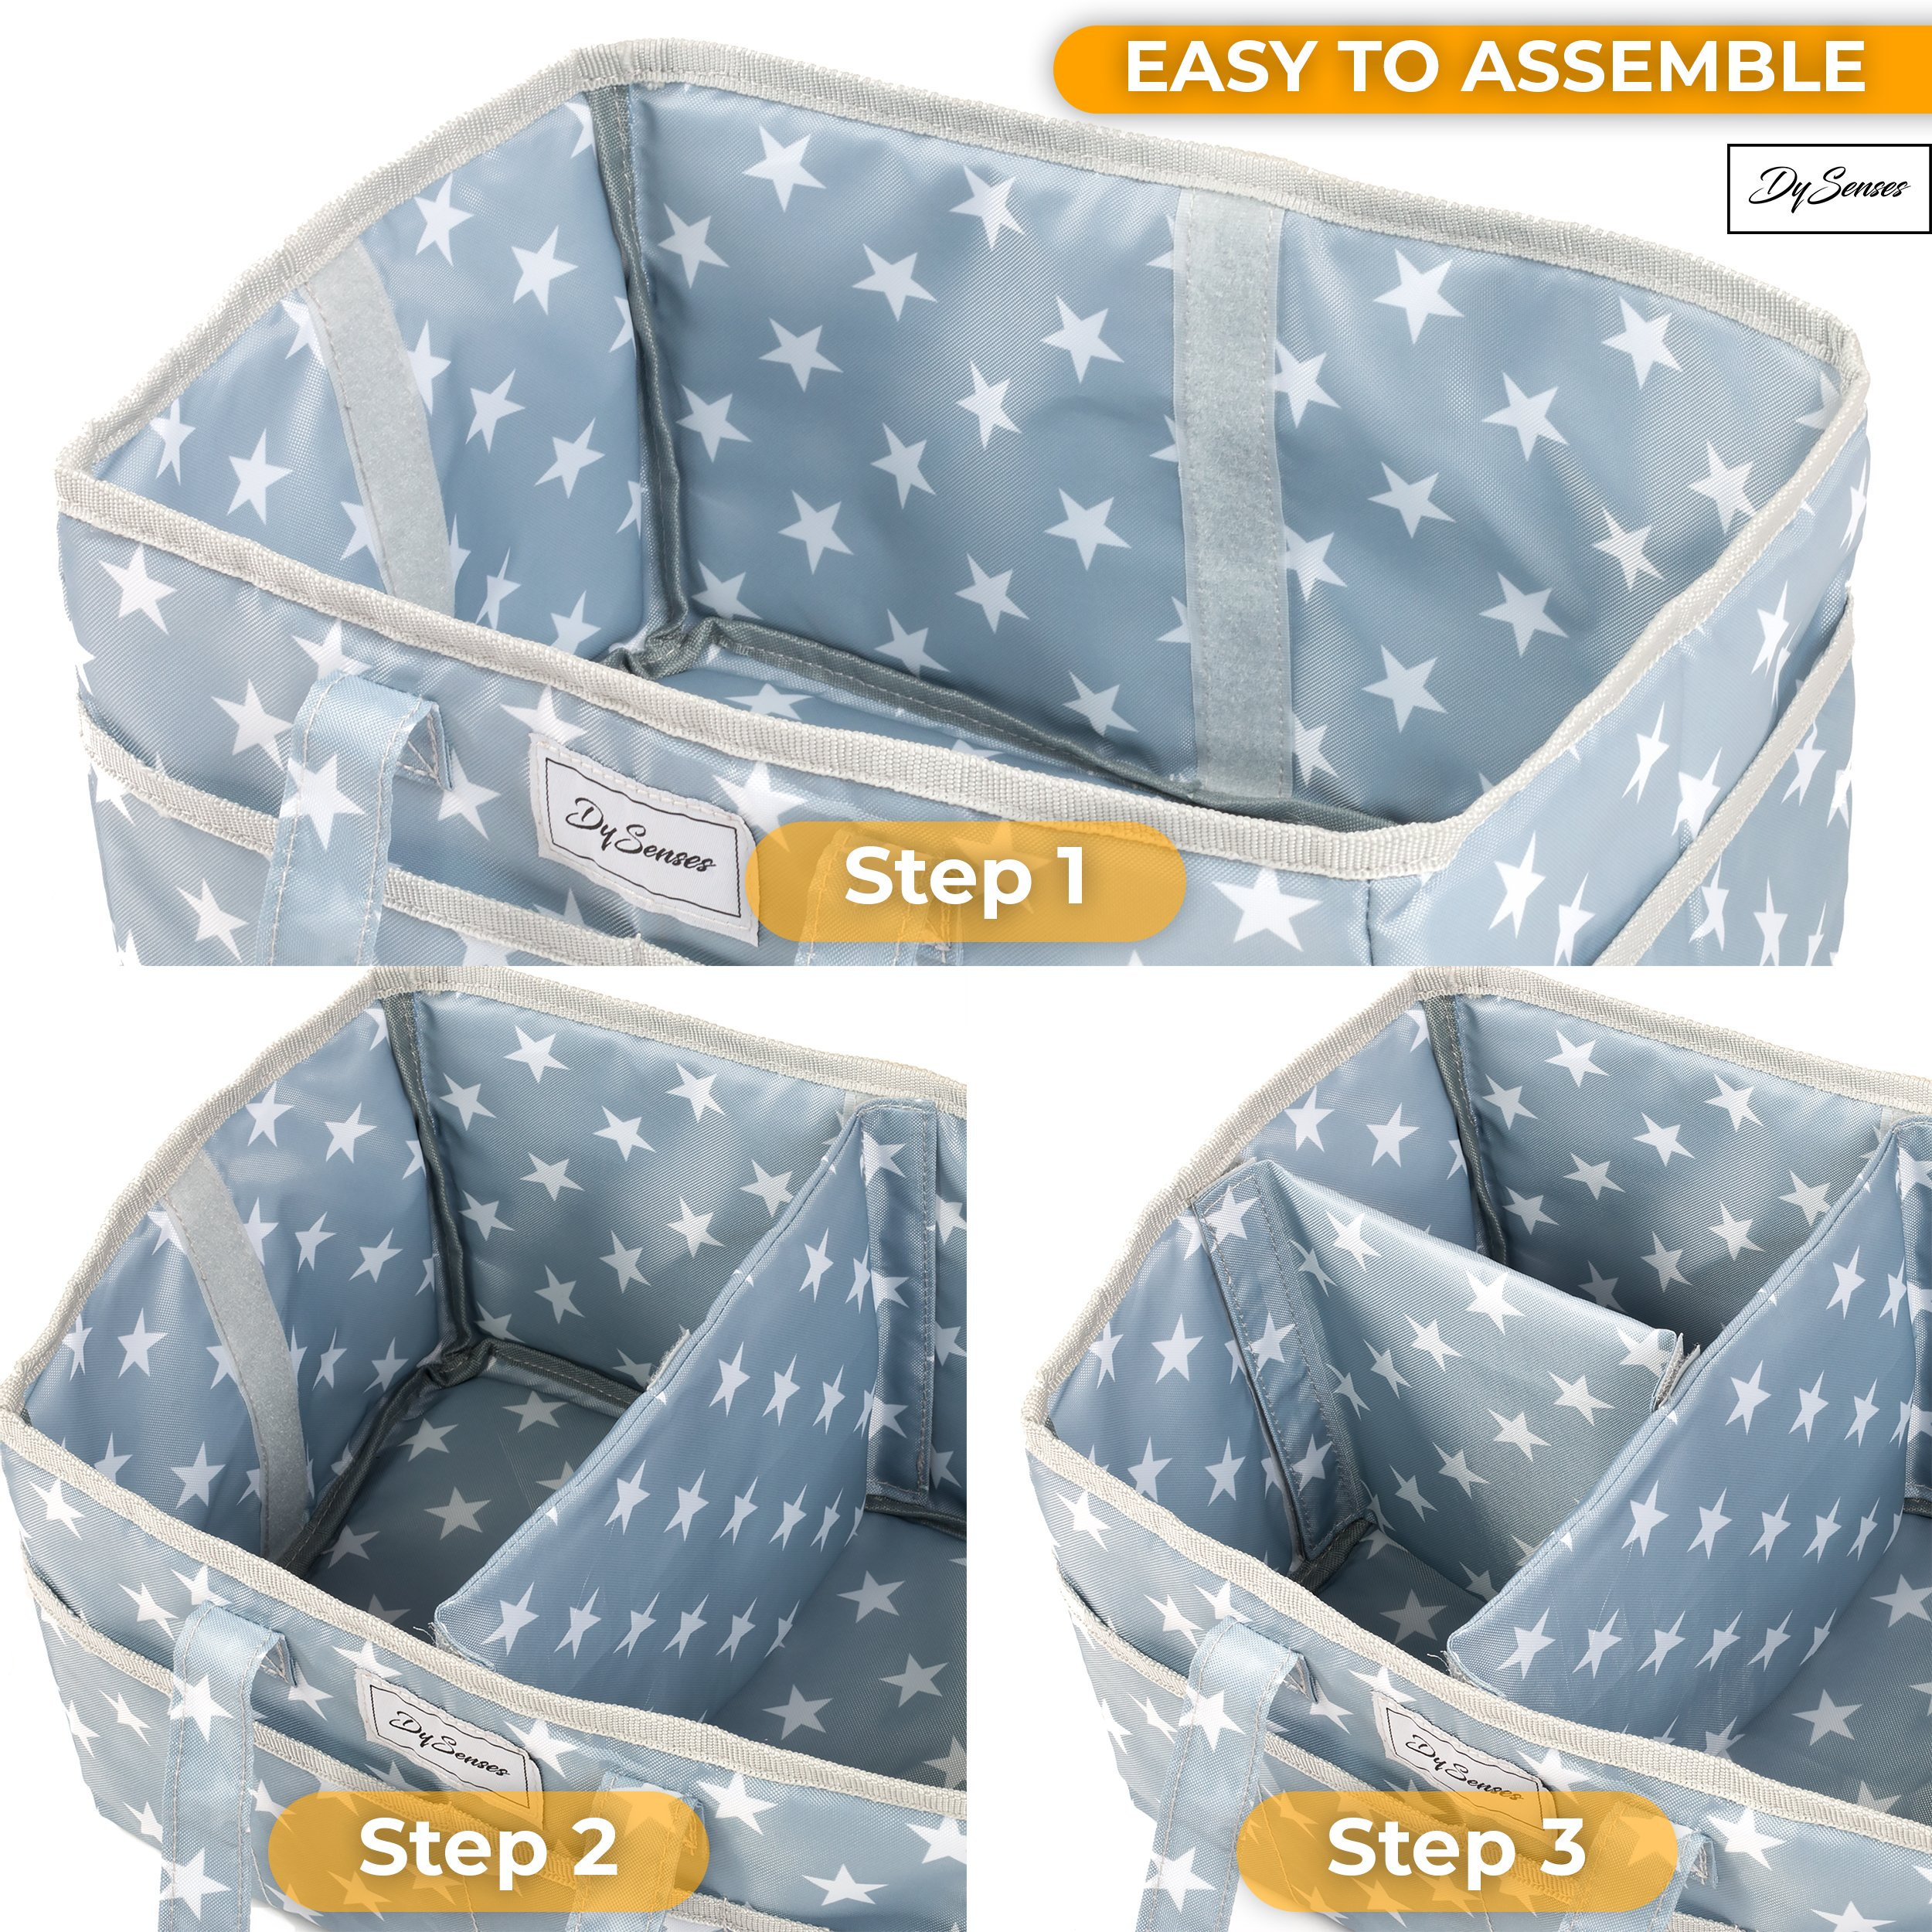 Diaper Storage Caddy Nursery Organizer | Grey Baby Diaper Caddy & Portable Changing Pad | Suitable for Car Travel Picnic & Nursing Station by DySenses (Image #7)